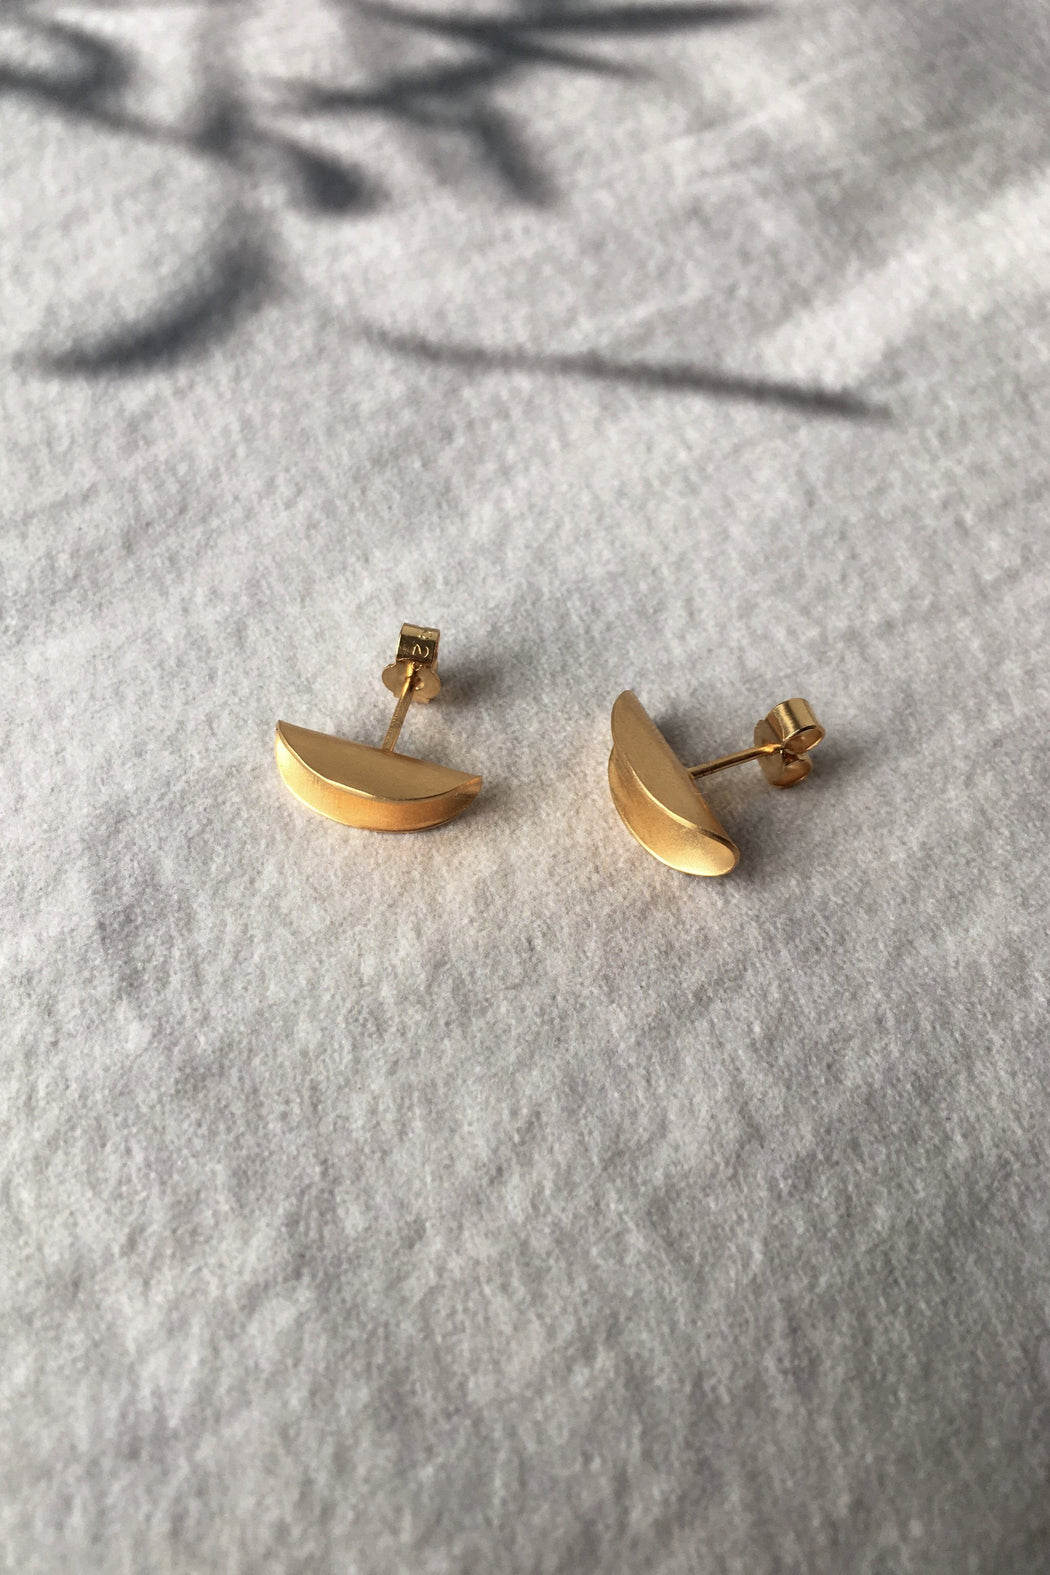 BAIUSHKI SORLA small earrings